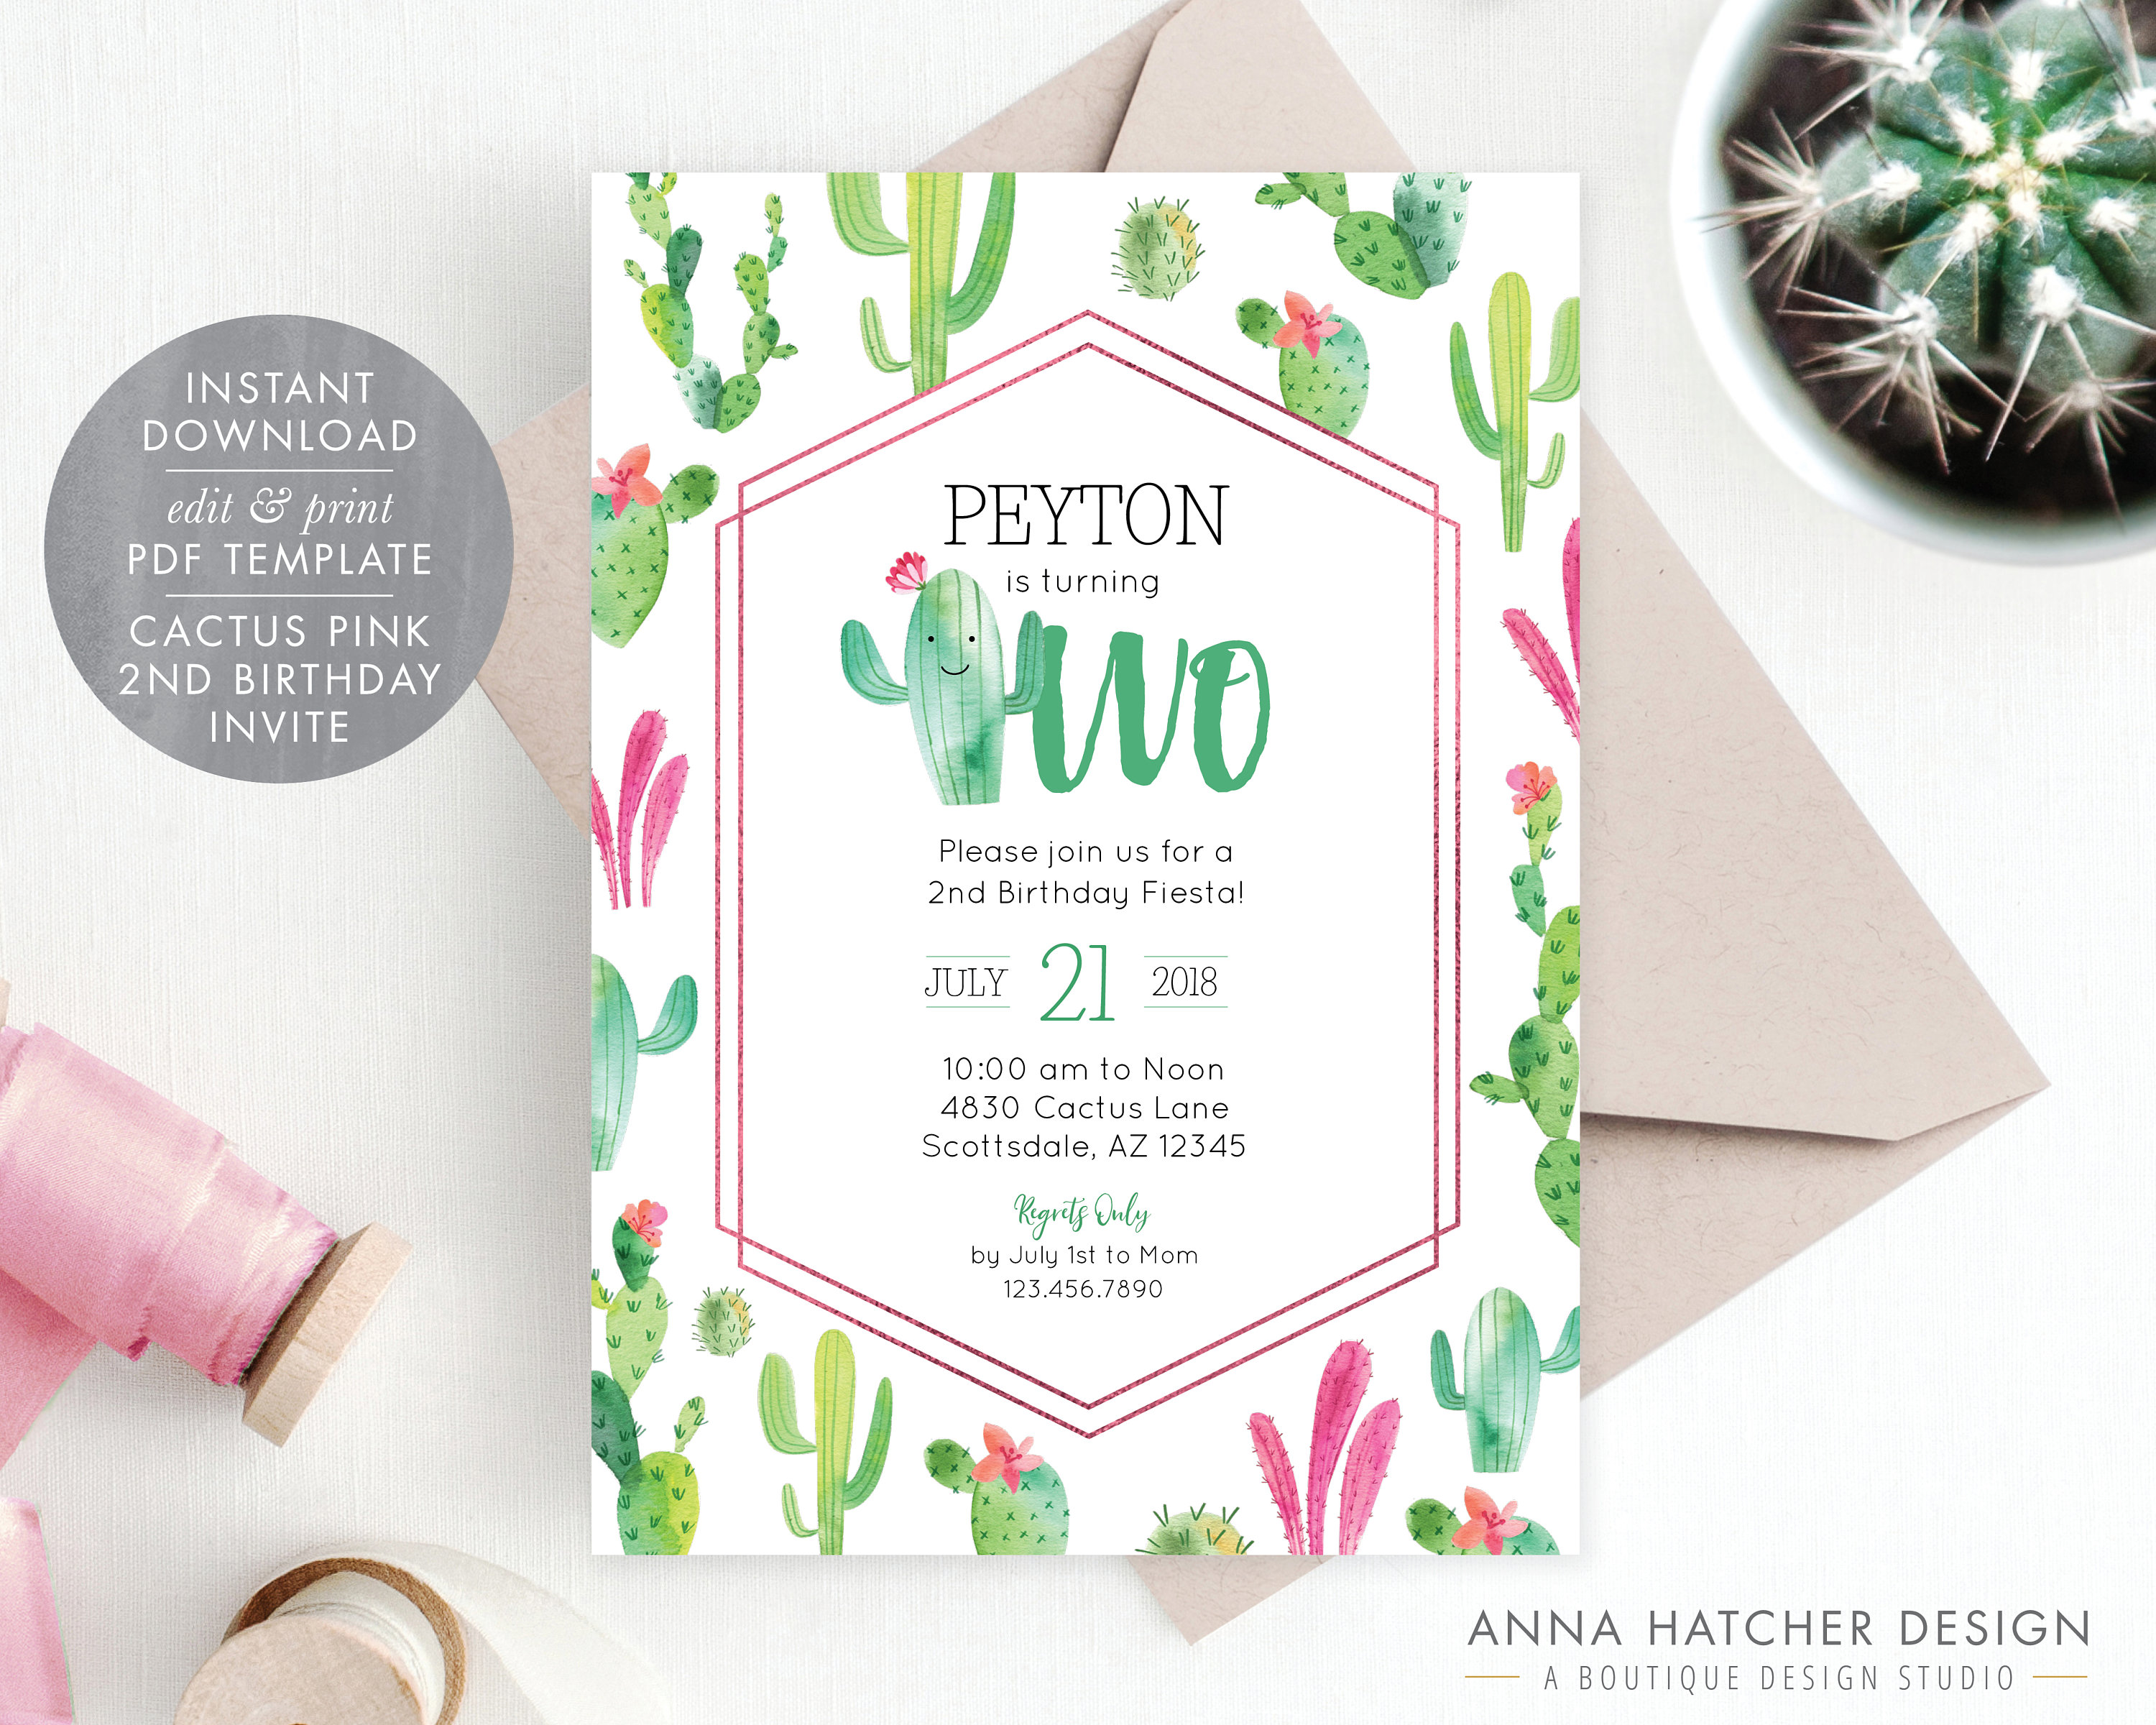 Cactus Pink 2nd Birthday Party Invitation Girl Invite Turning Two Fiesta Editable PDF BDAY23